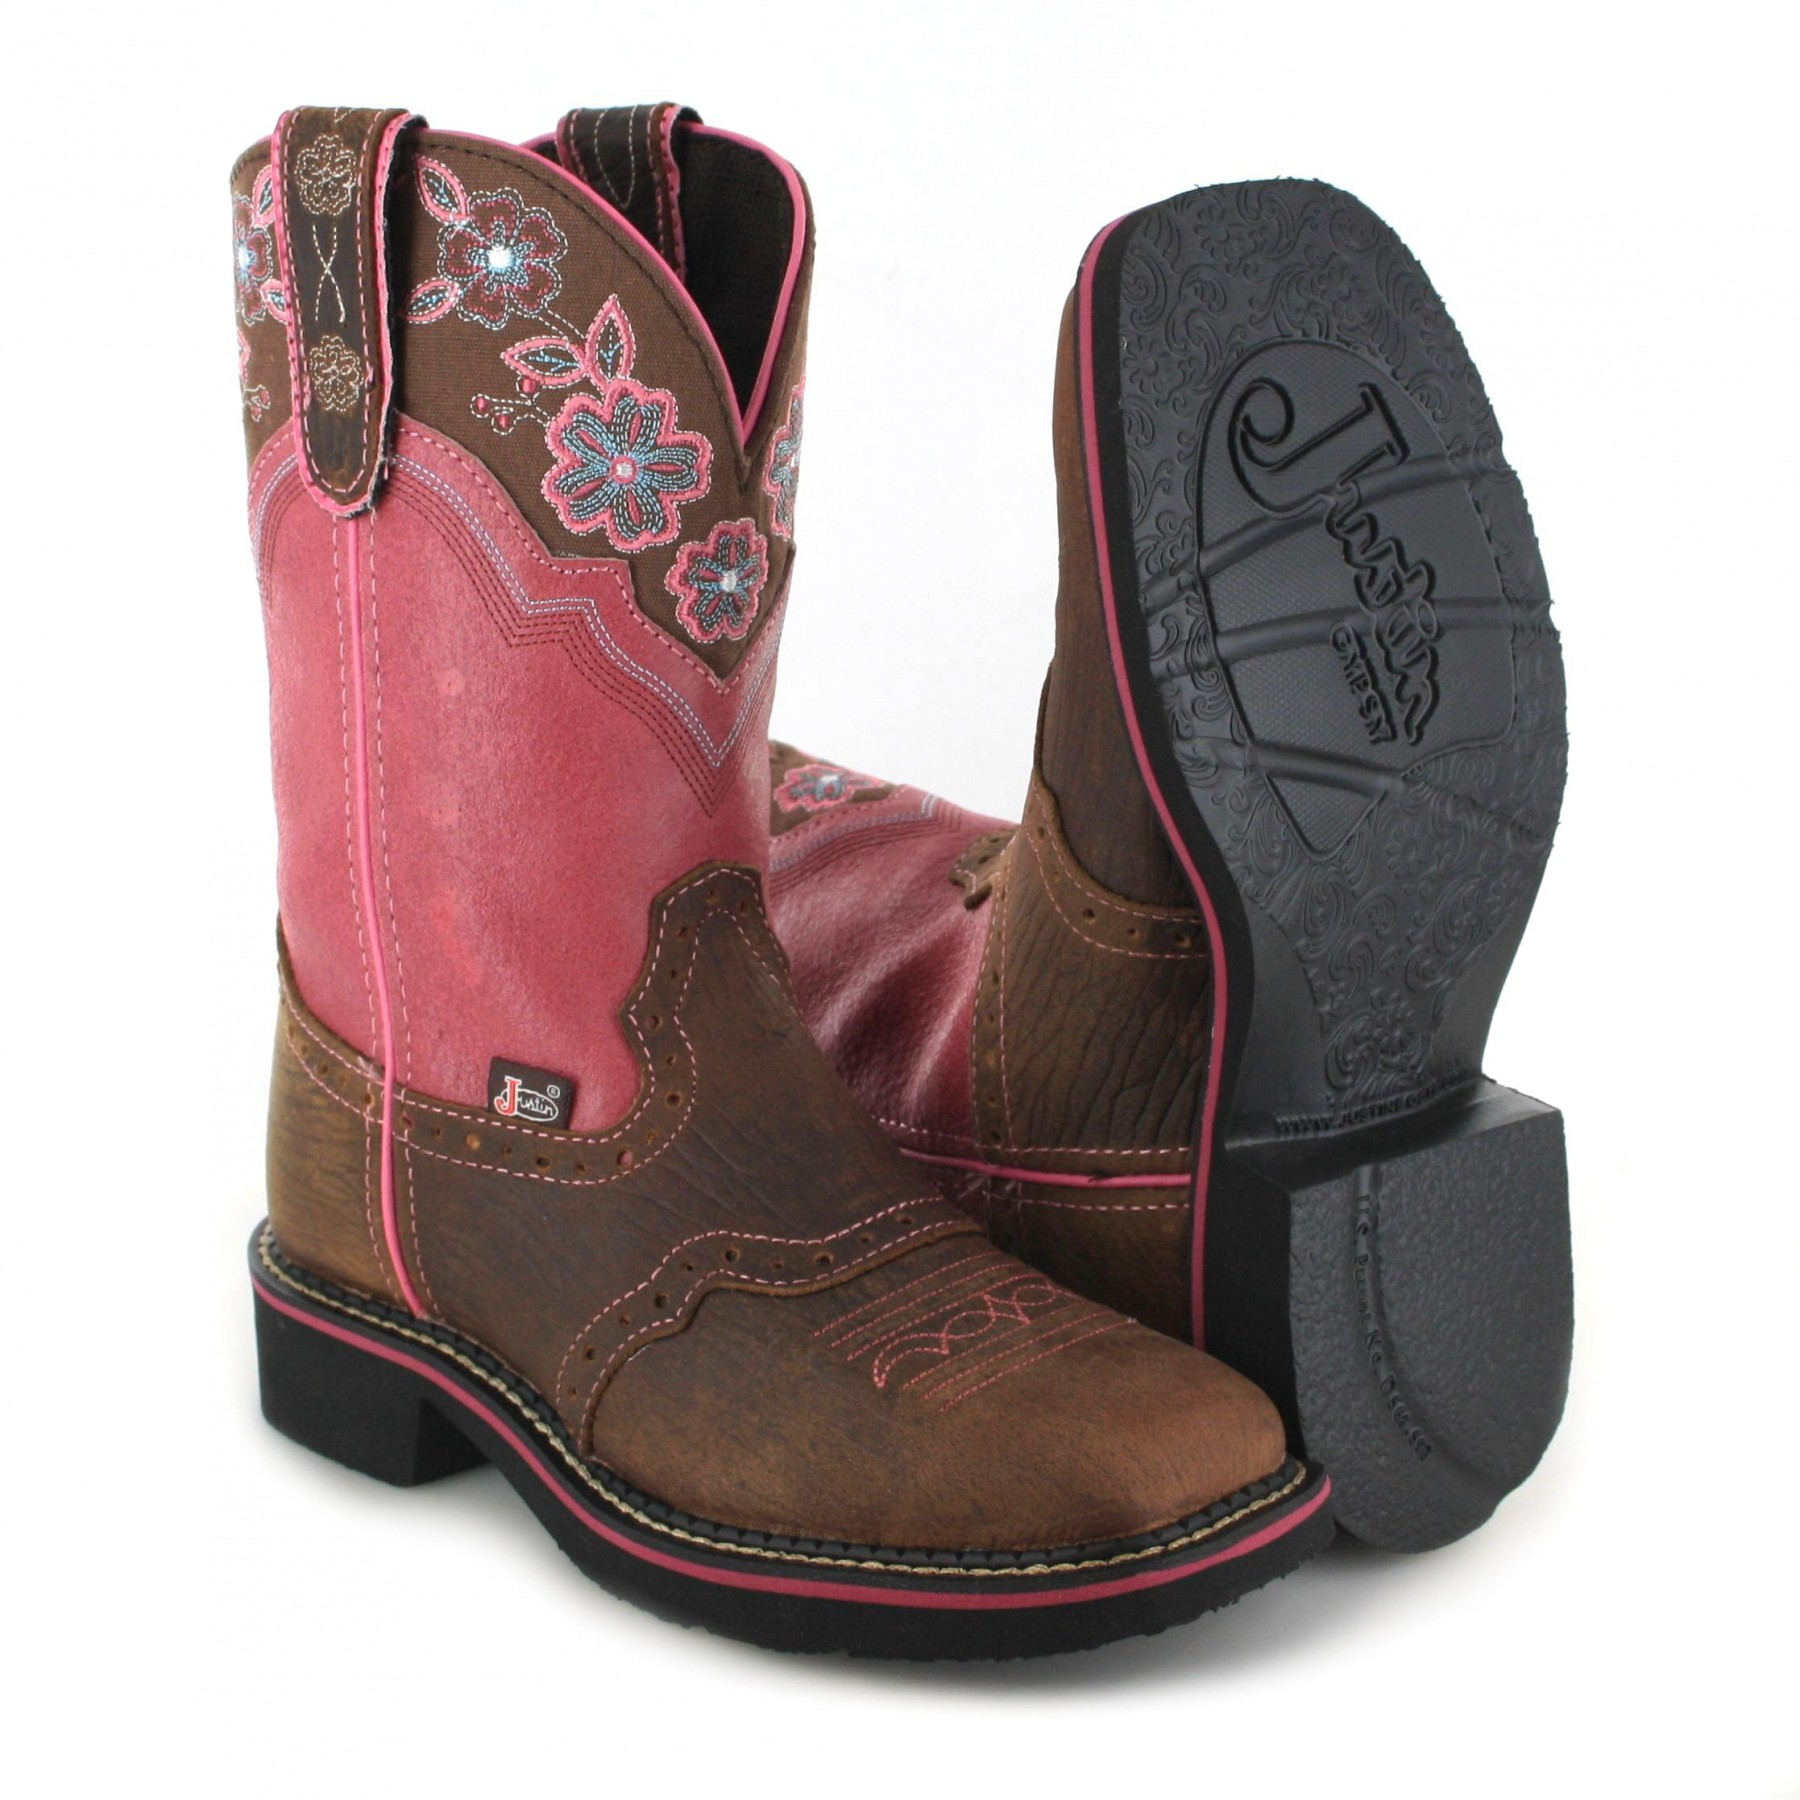 justin boots l9955 western boot brown pink